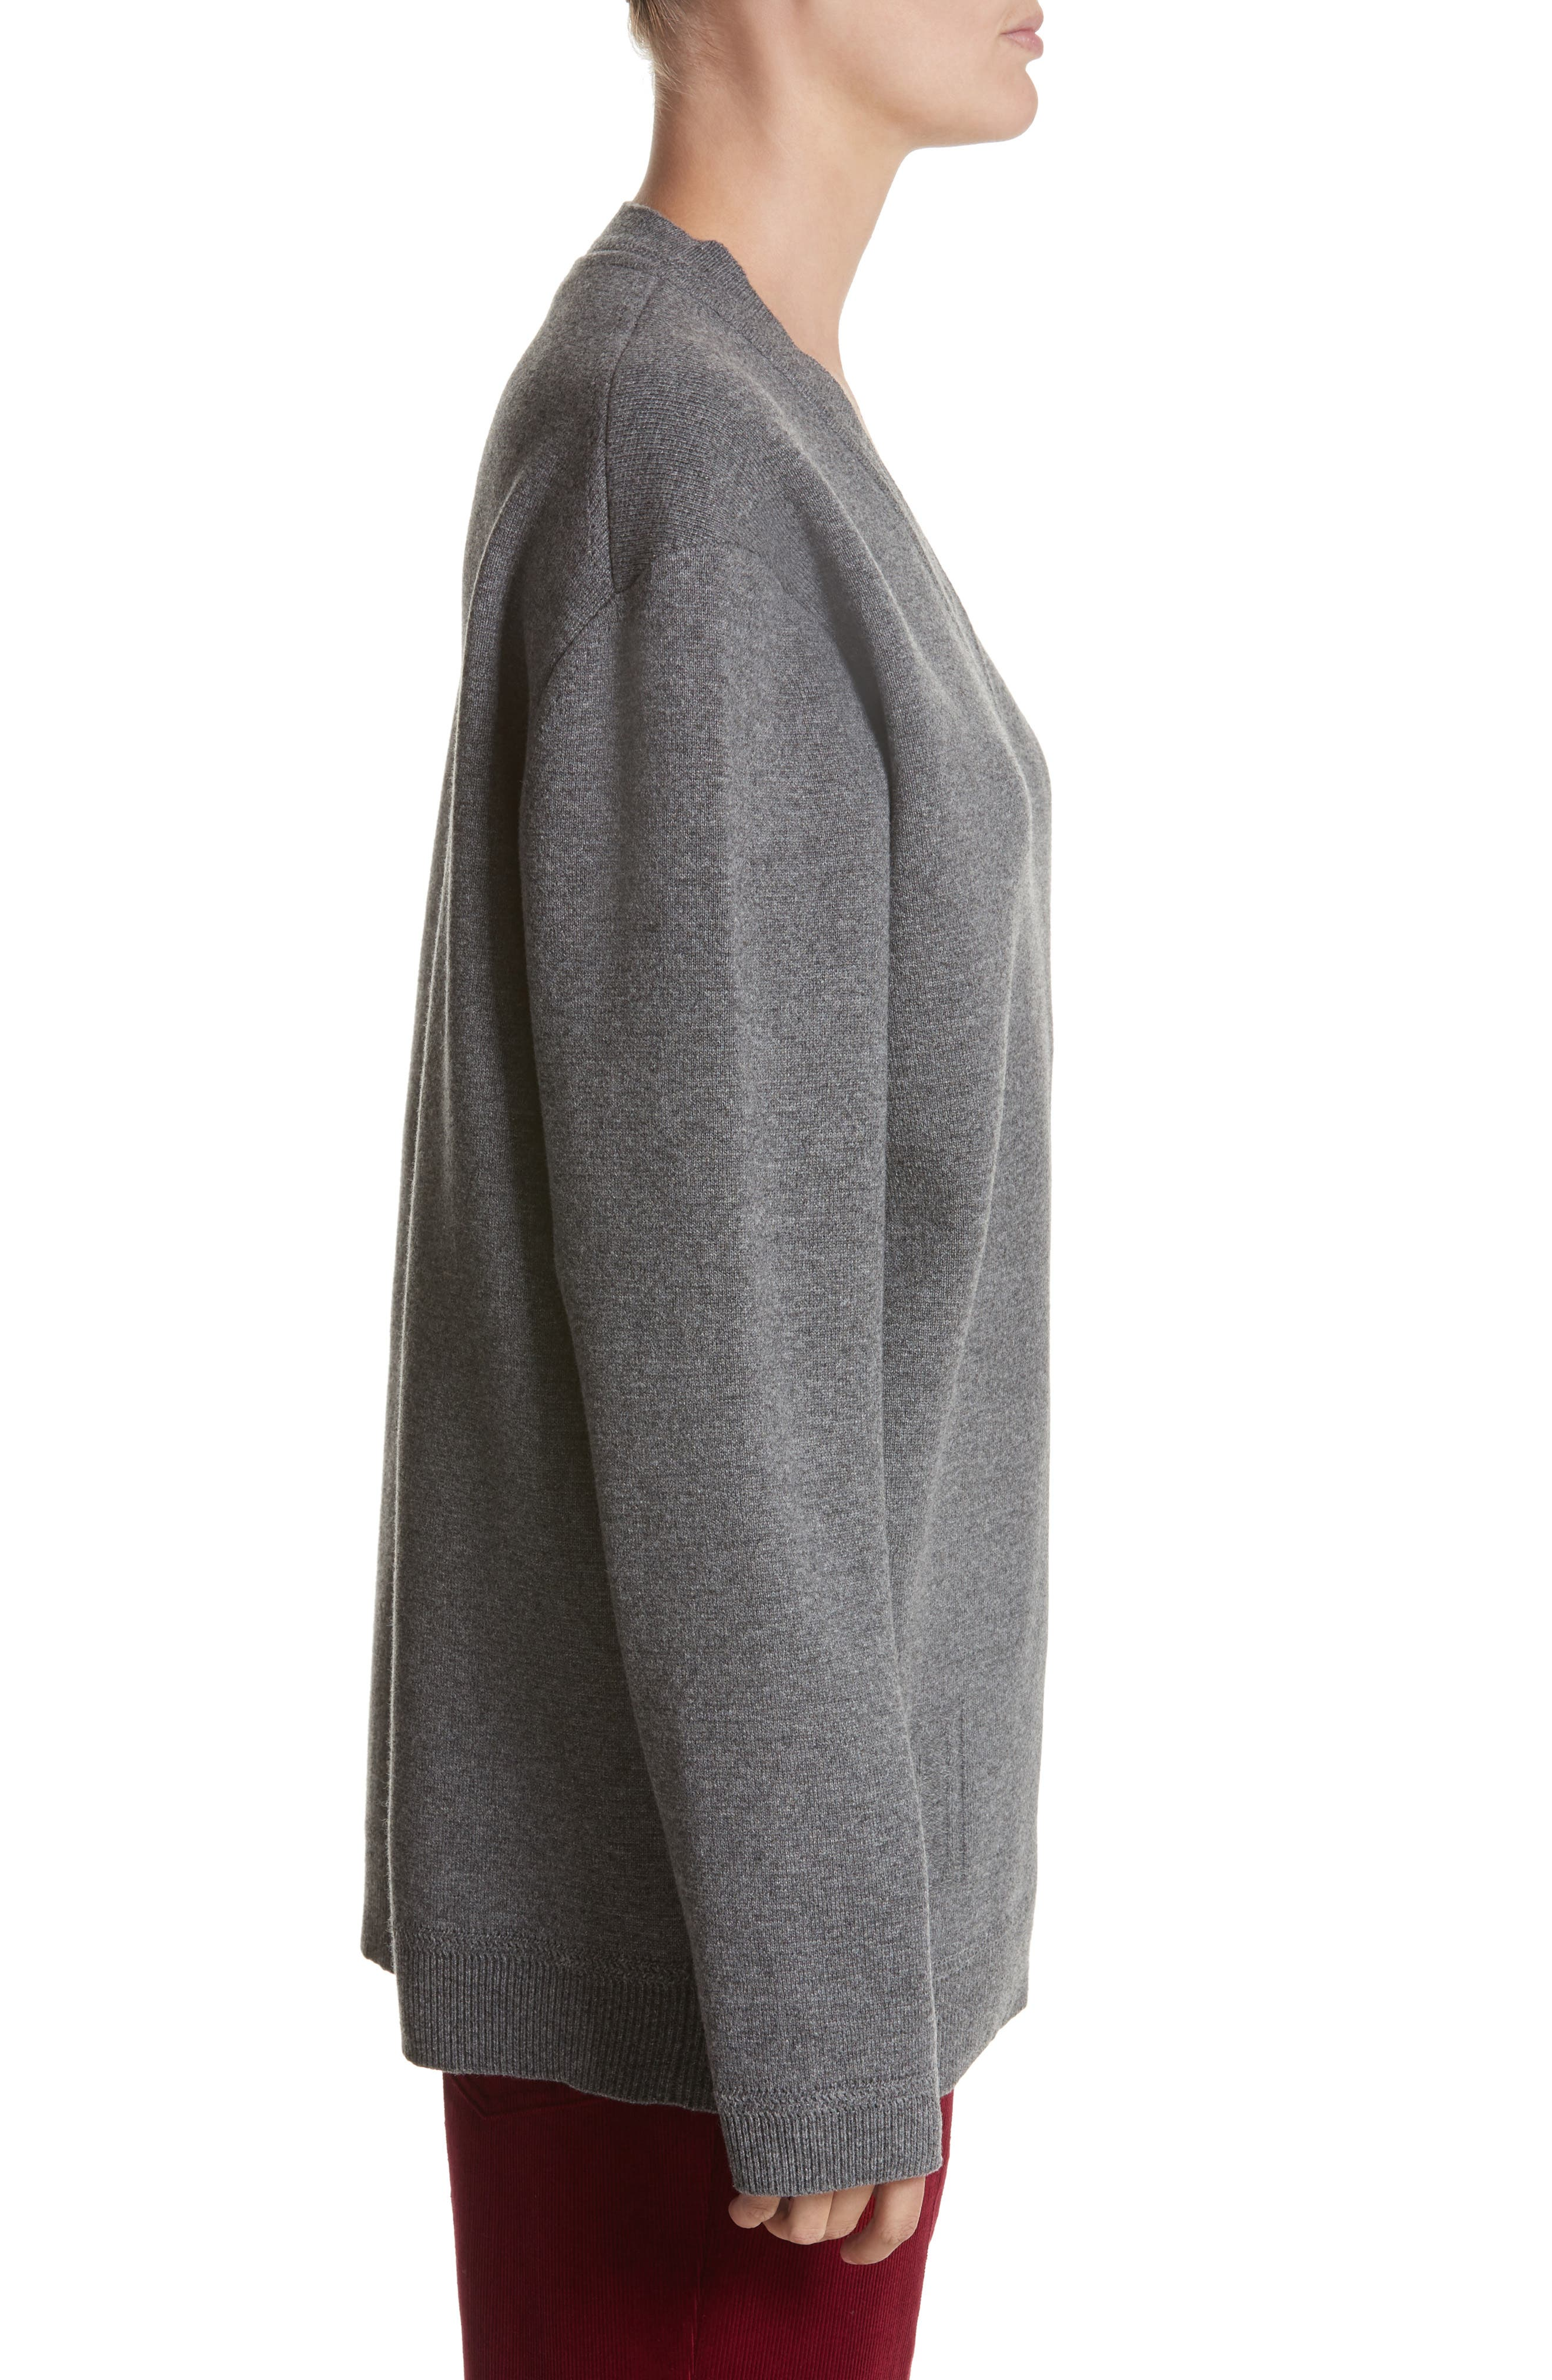 Wool & Cashmere Sweater,                             Alternate thumbnail 3, color,                             032